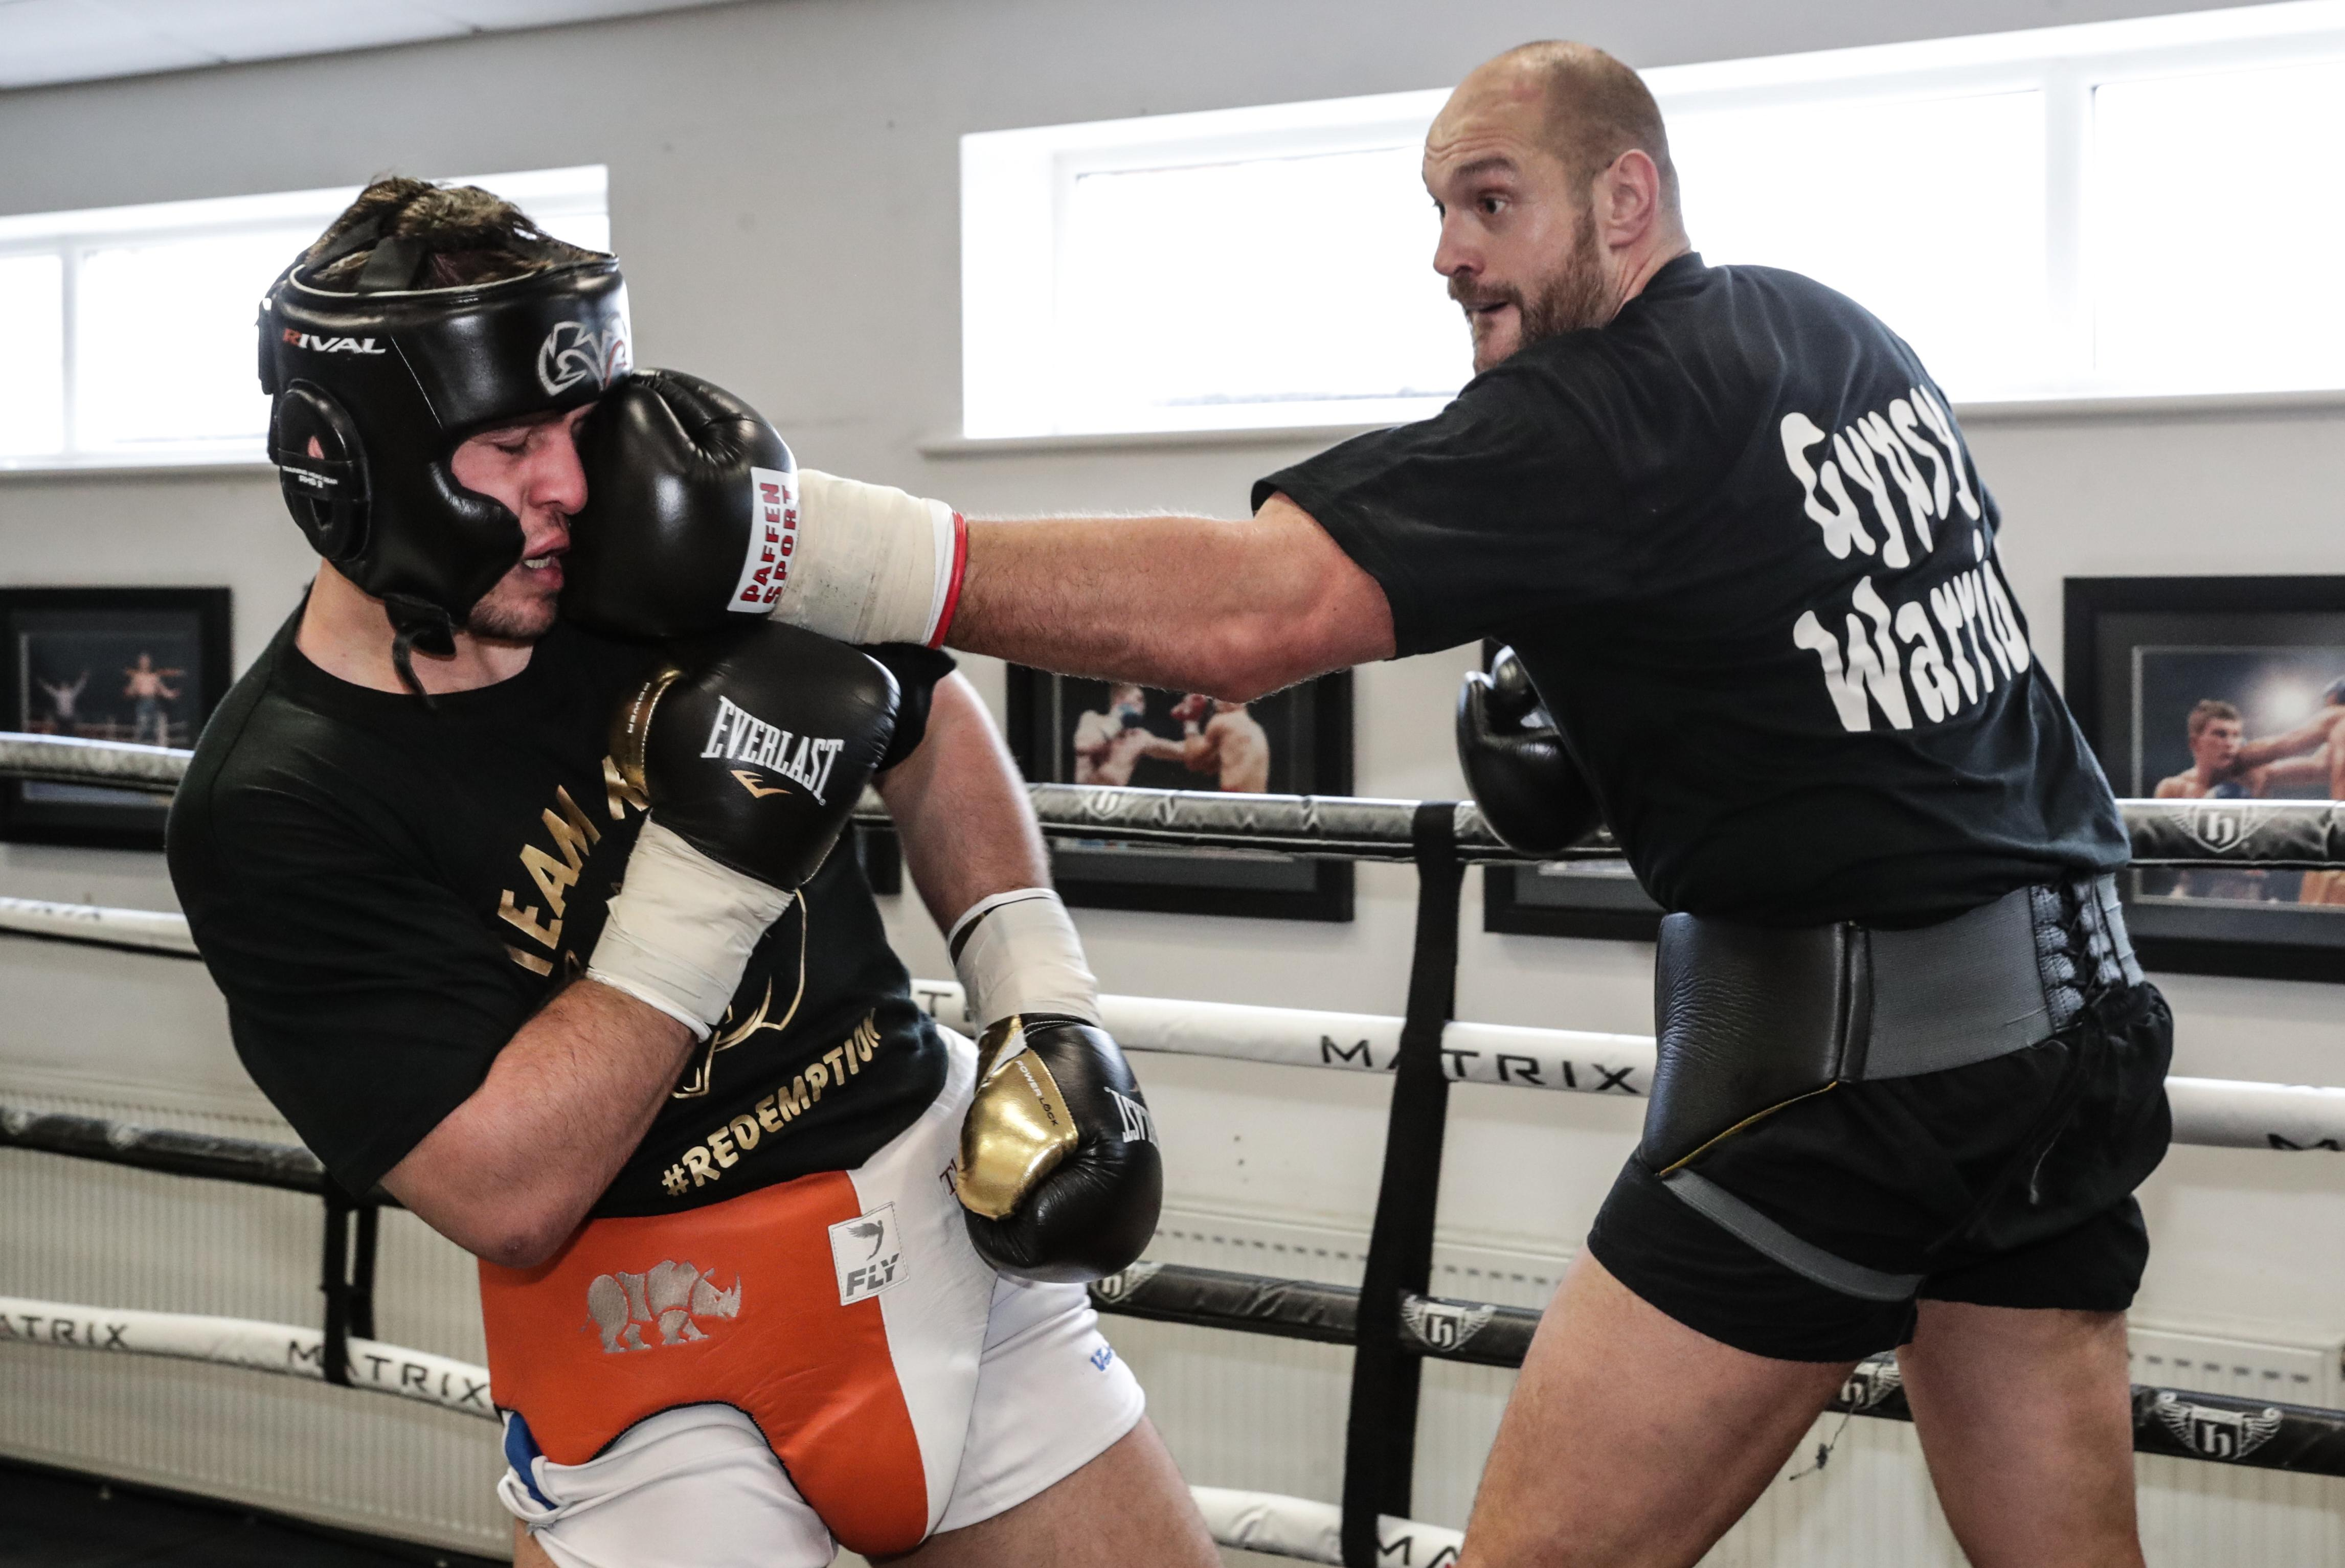 Tyson Fury lands one on fellow Brit David Allen as he continues his sparring ahead of his big comeback